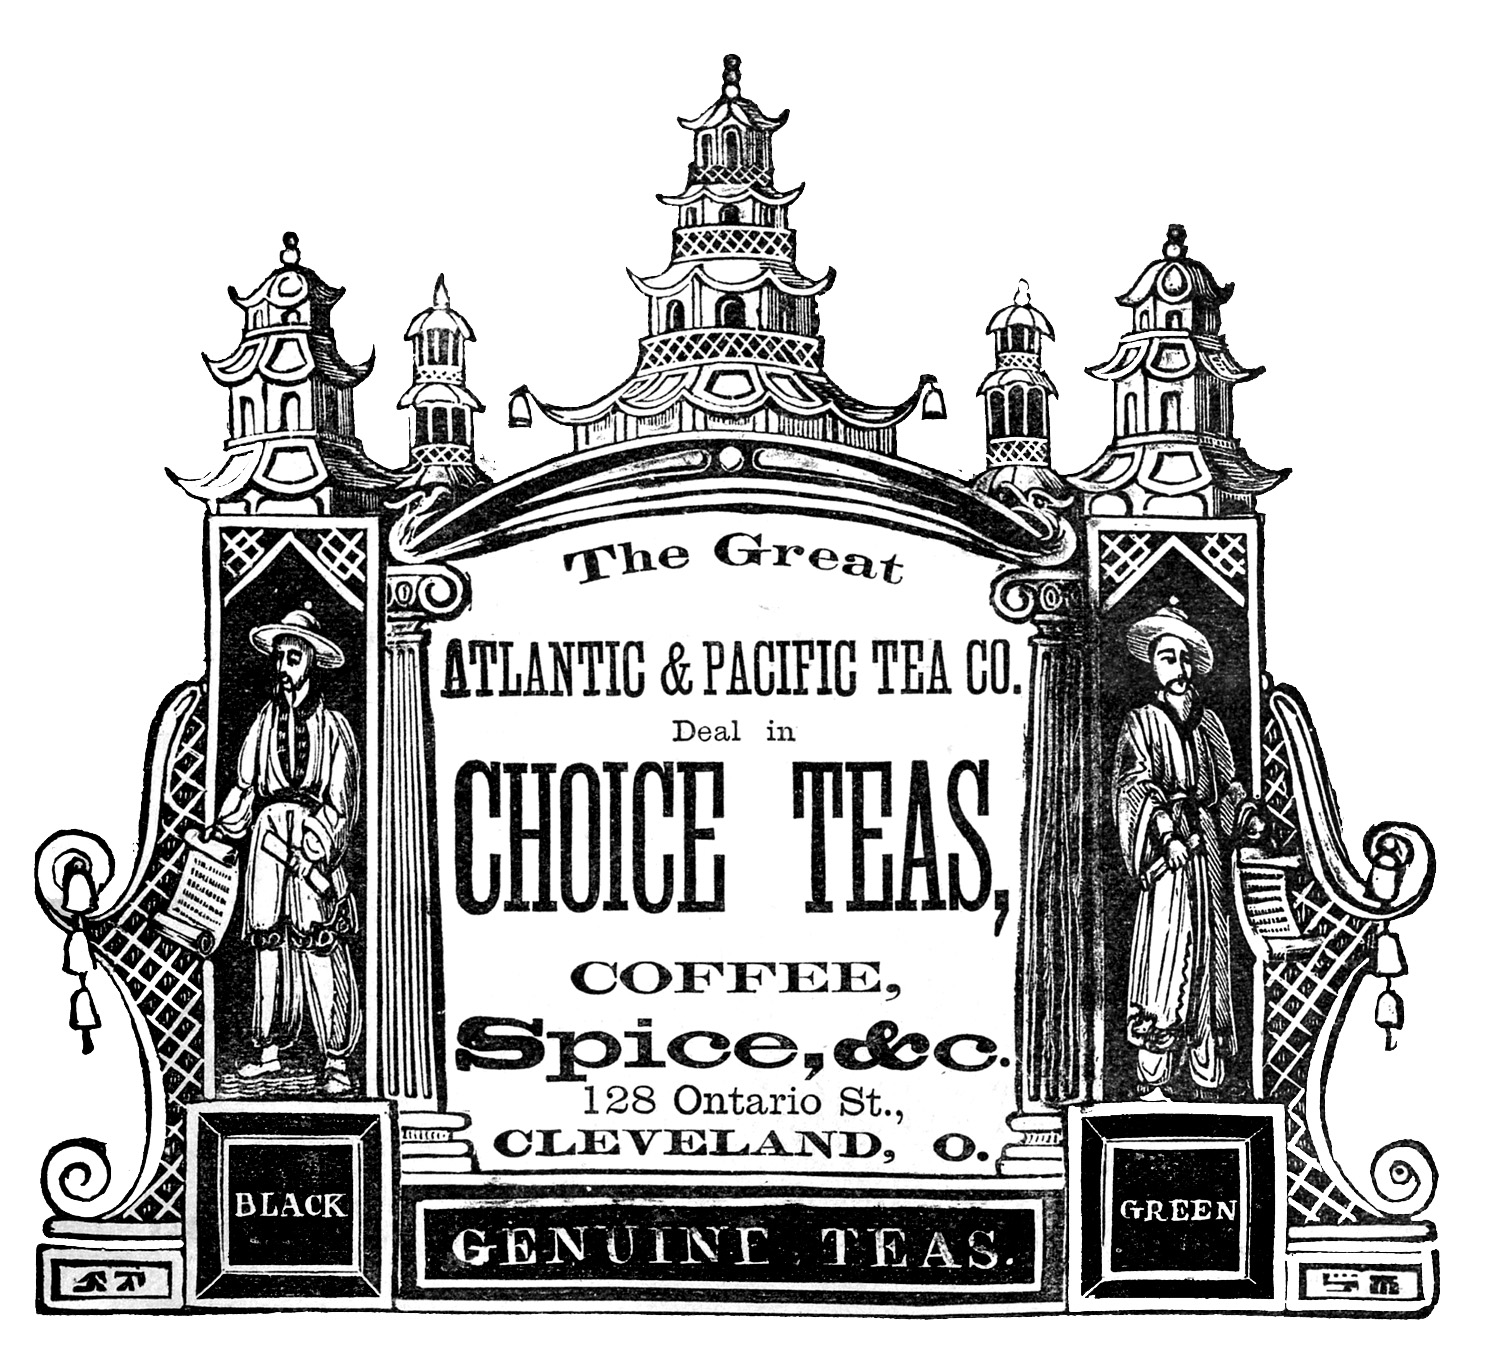 Advertising clipart black and white, Picture #215584.